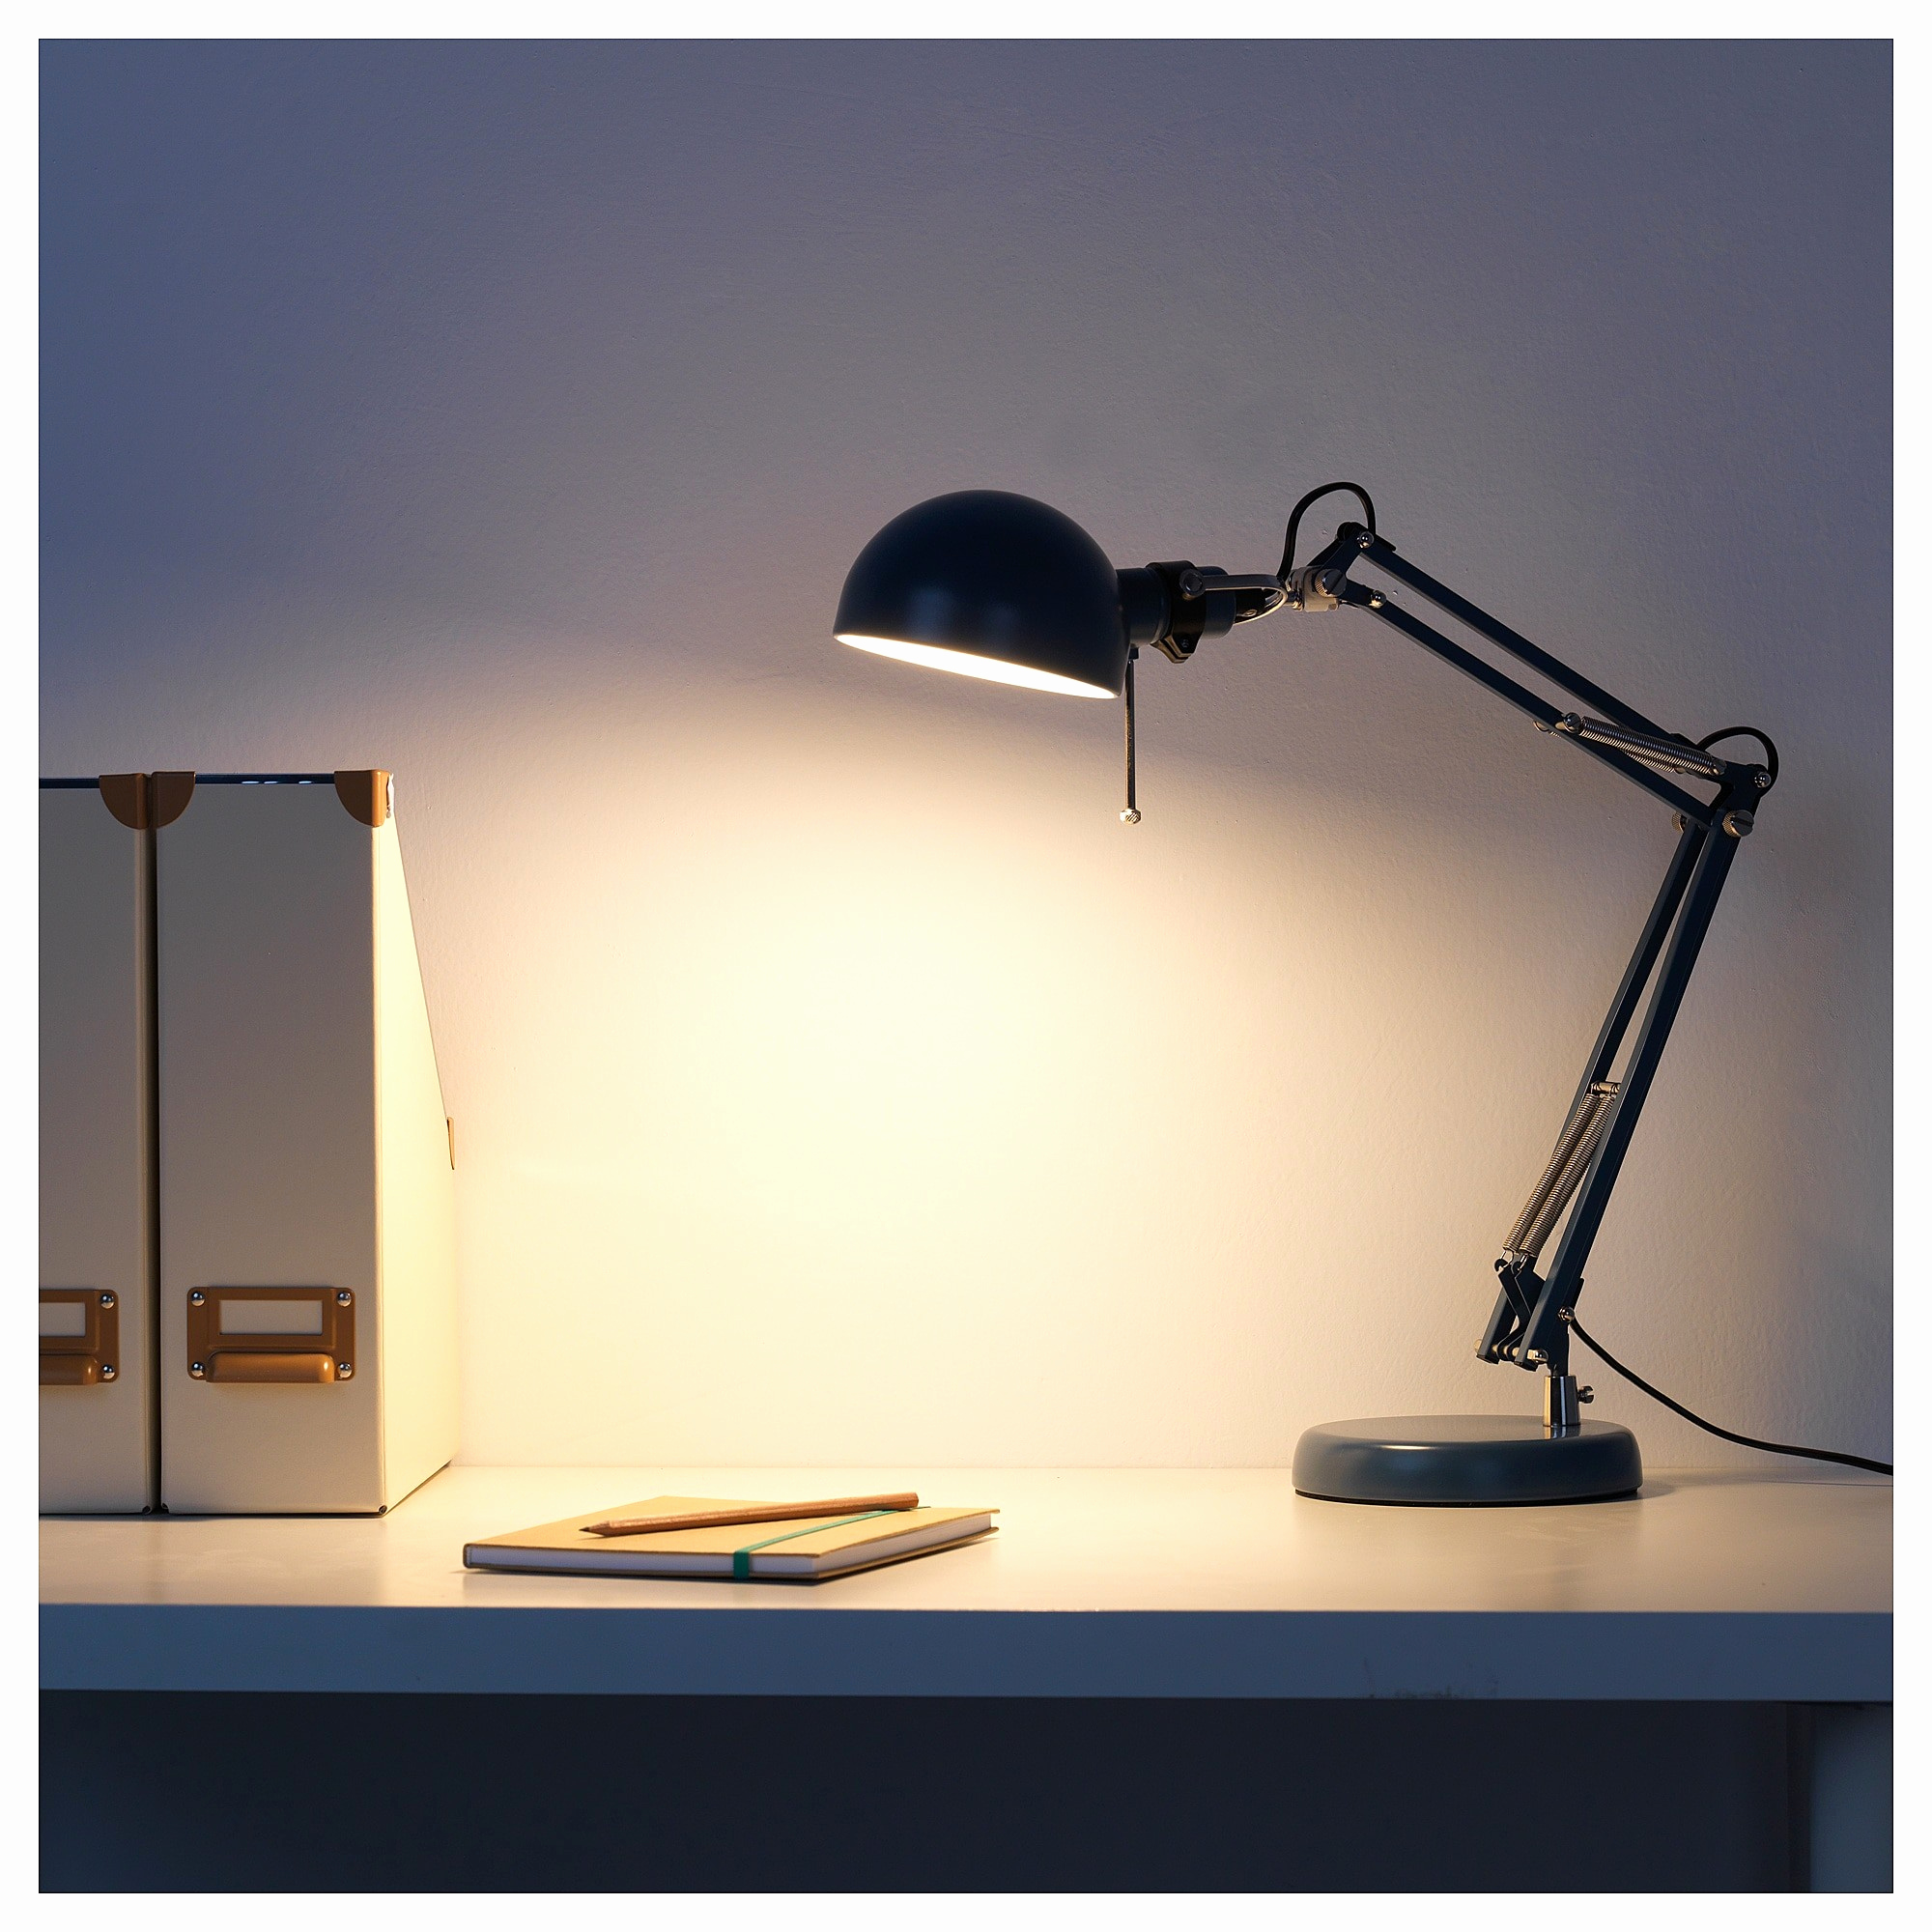 lampe de bureau led design ikea id e de luminaire et. Black Bedroom Furniture Sets. Home Design Ideas